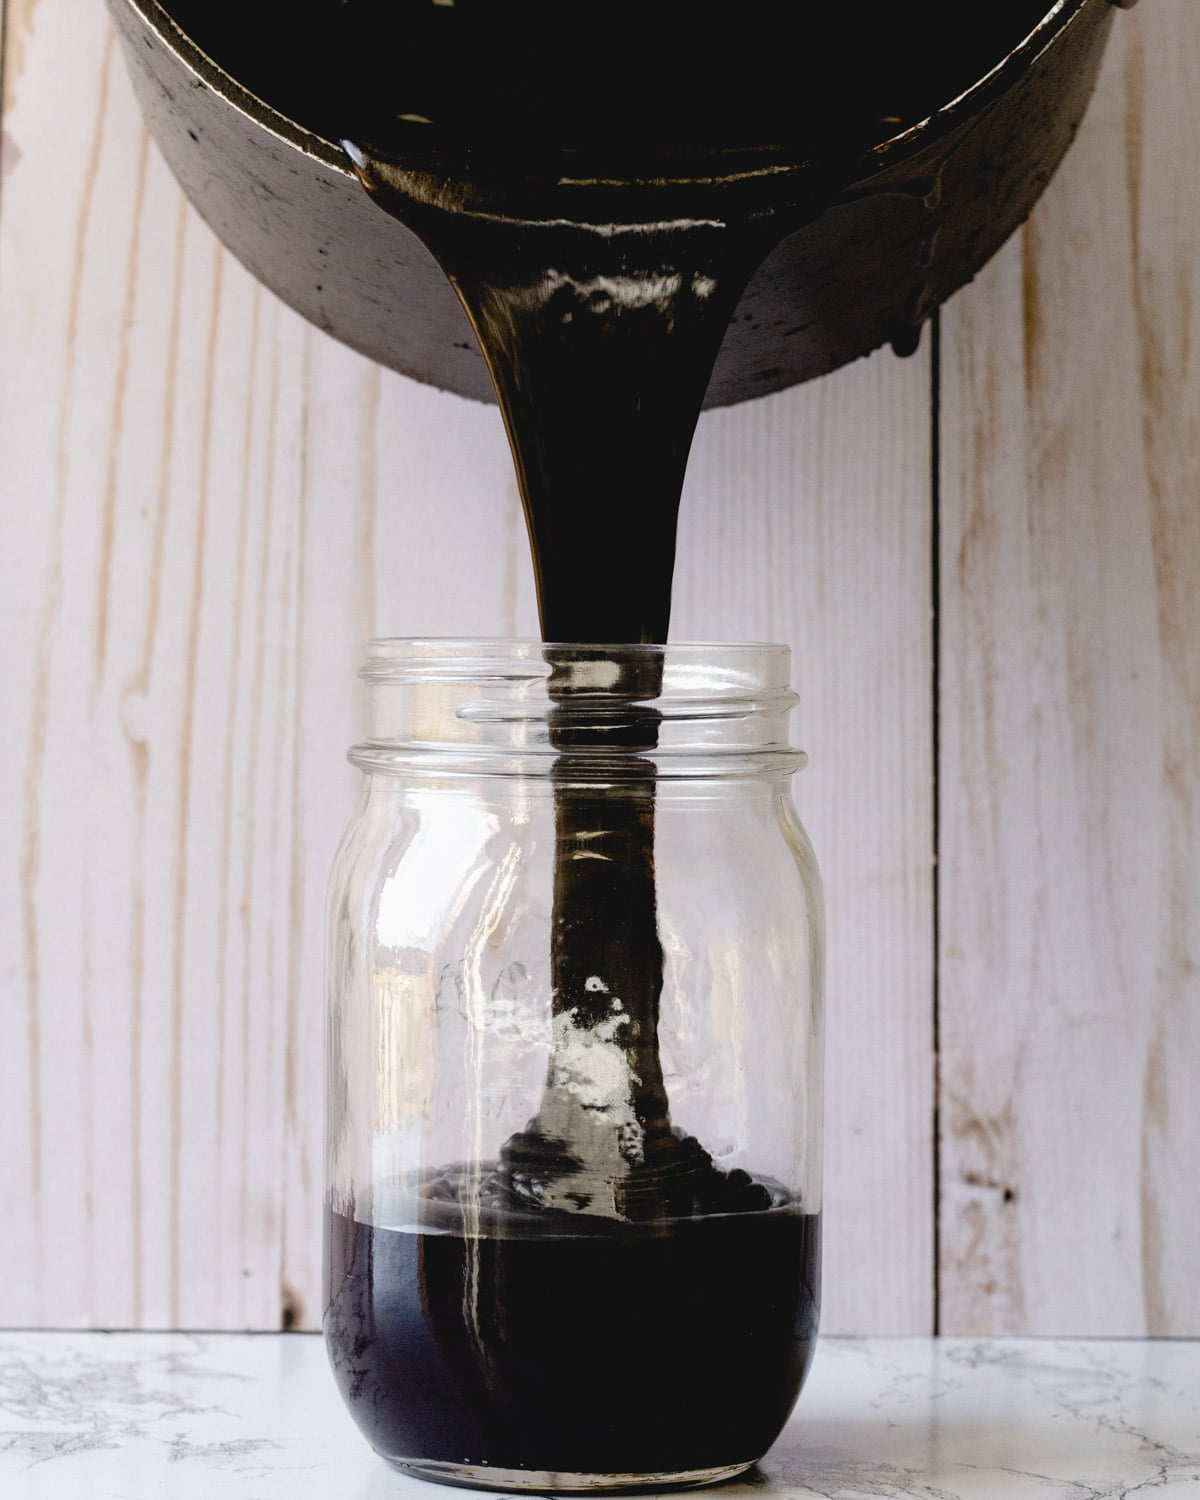 Pouring hot fudge into a mason jar.